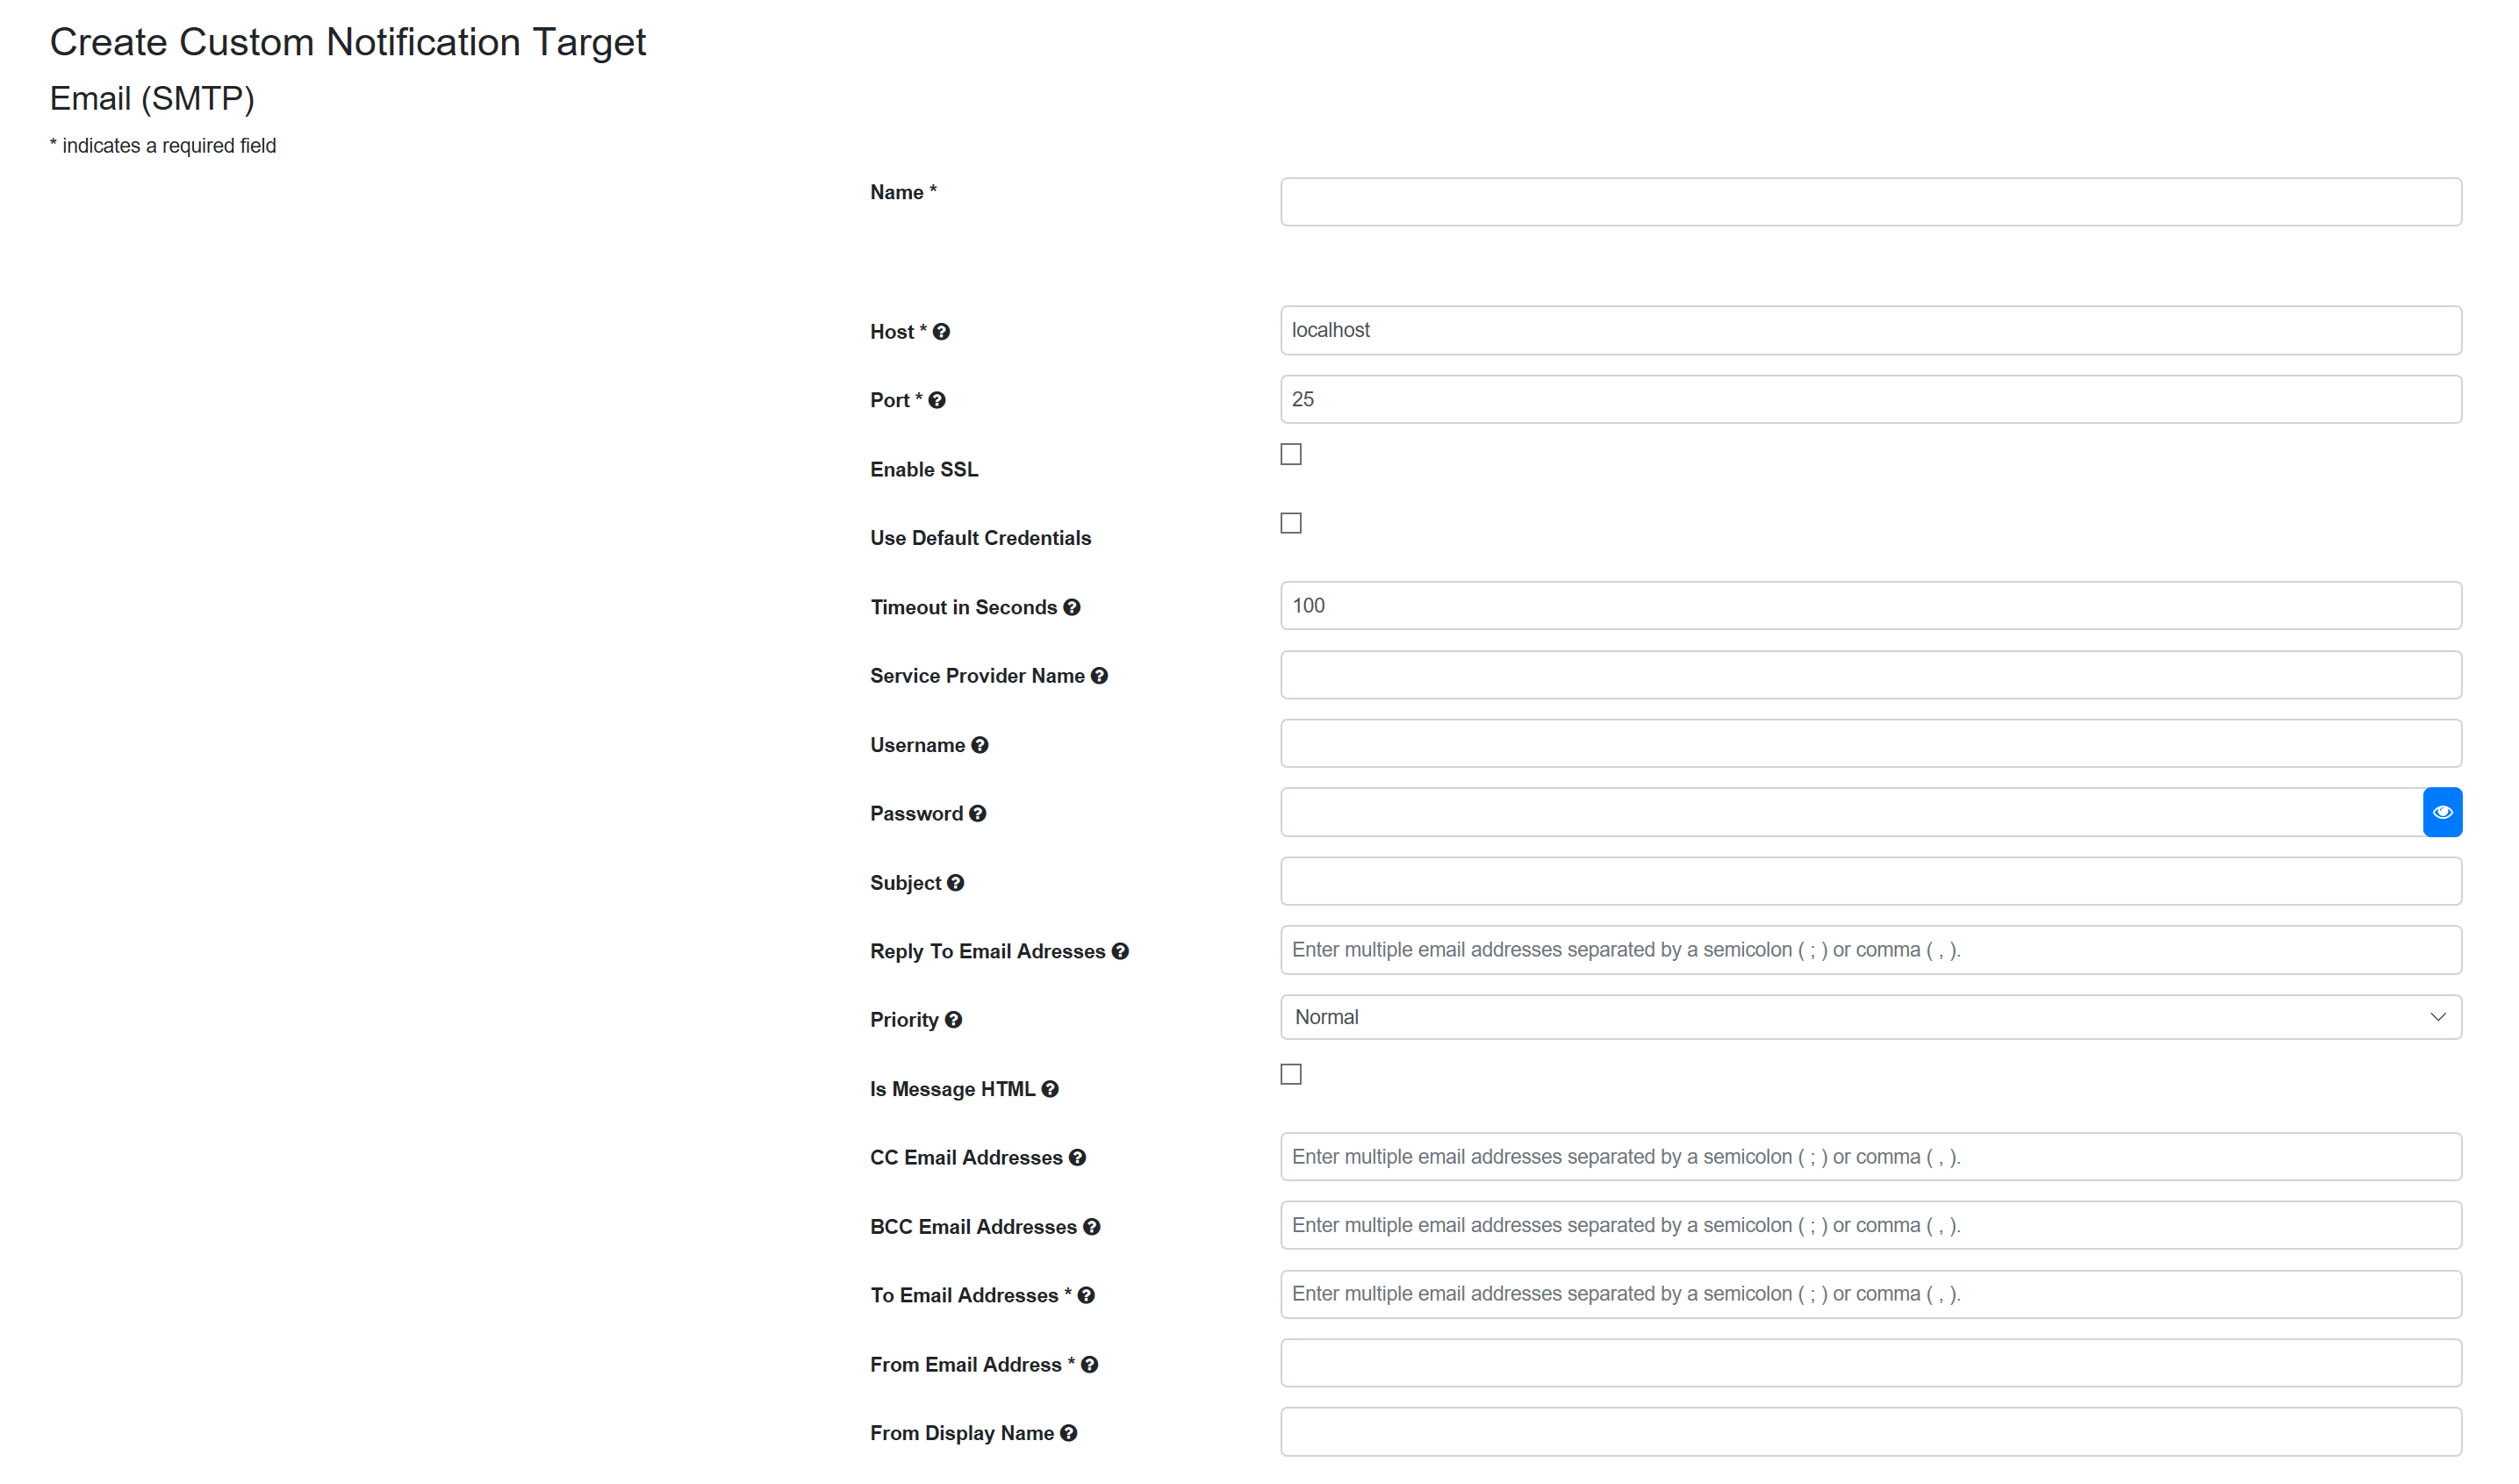 SentryOne Test Create Email (SMTP) Target form